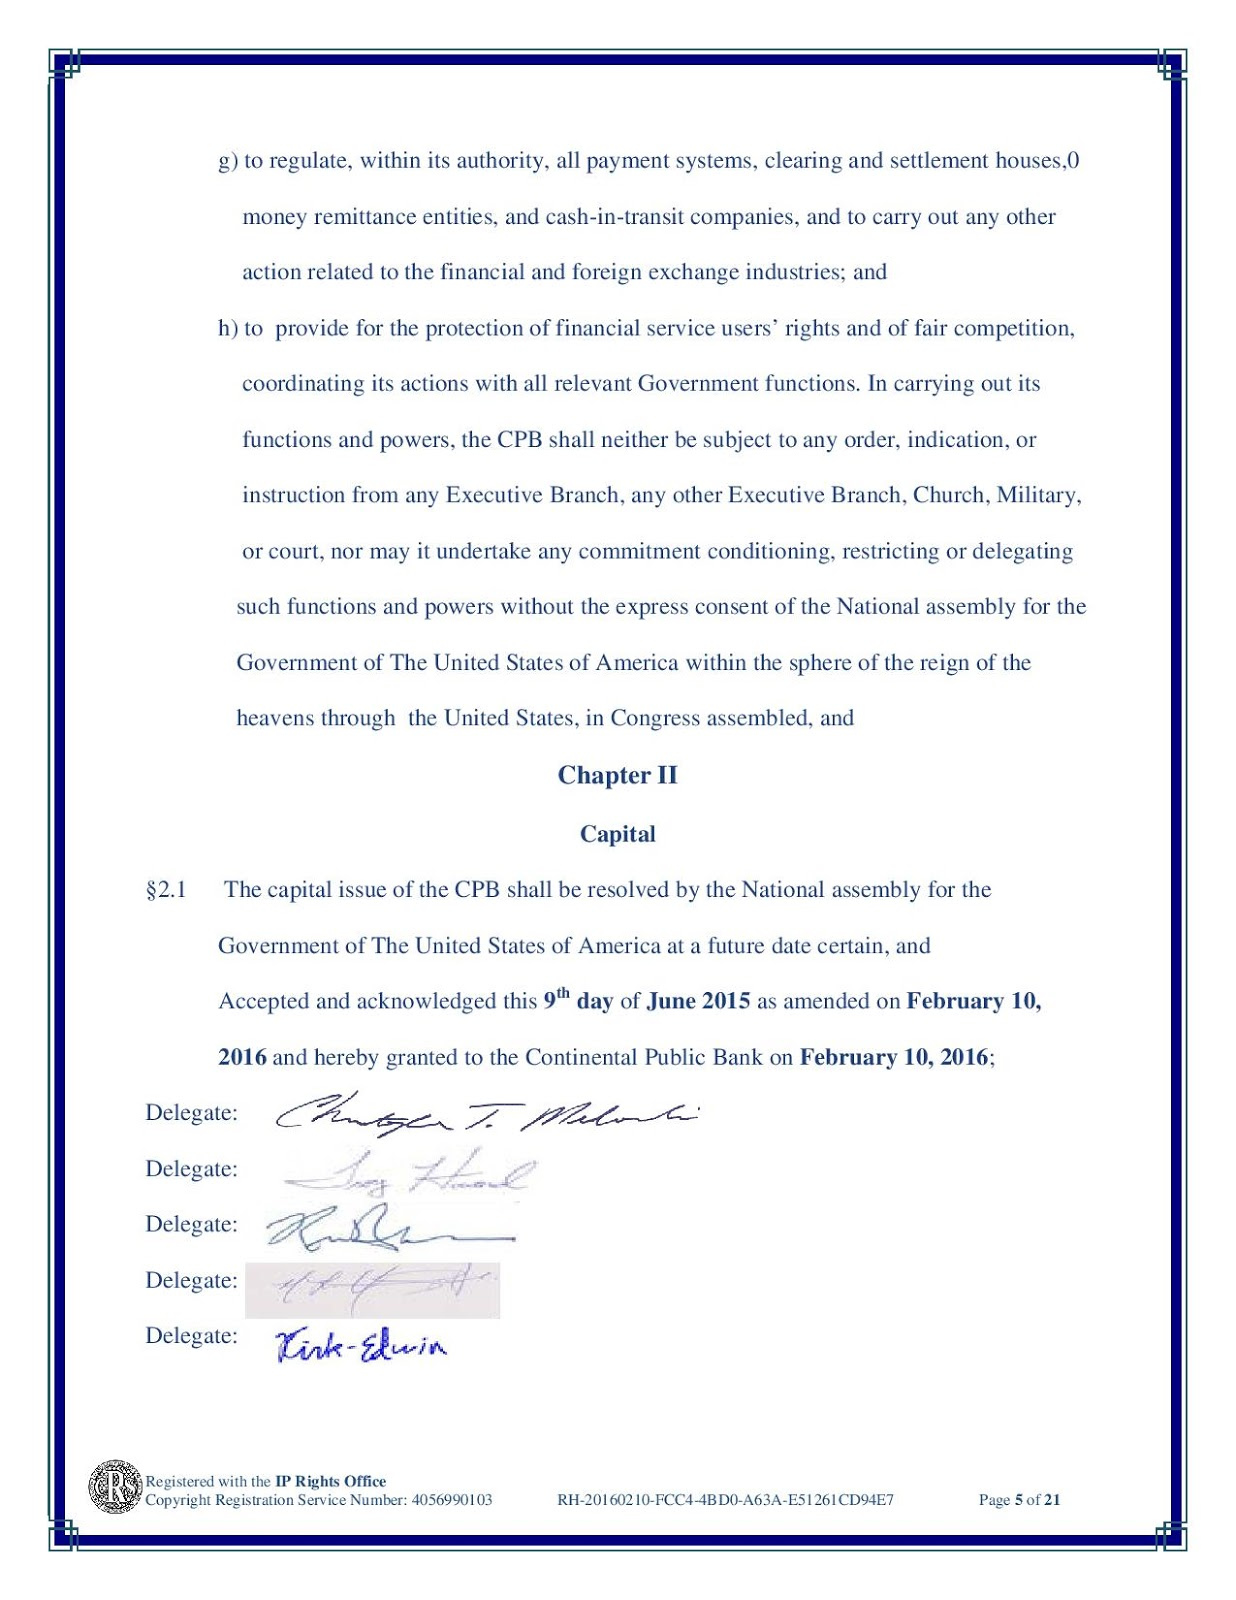 The United States, In Congress Assembled: PROCLAMATION OF DISSOLUTION OF THE BANK OF NORTH AMERICA. 20160210-GPOD3-CPB_CHARTER-page-005